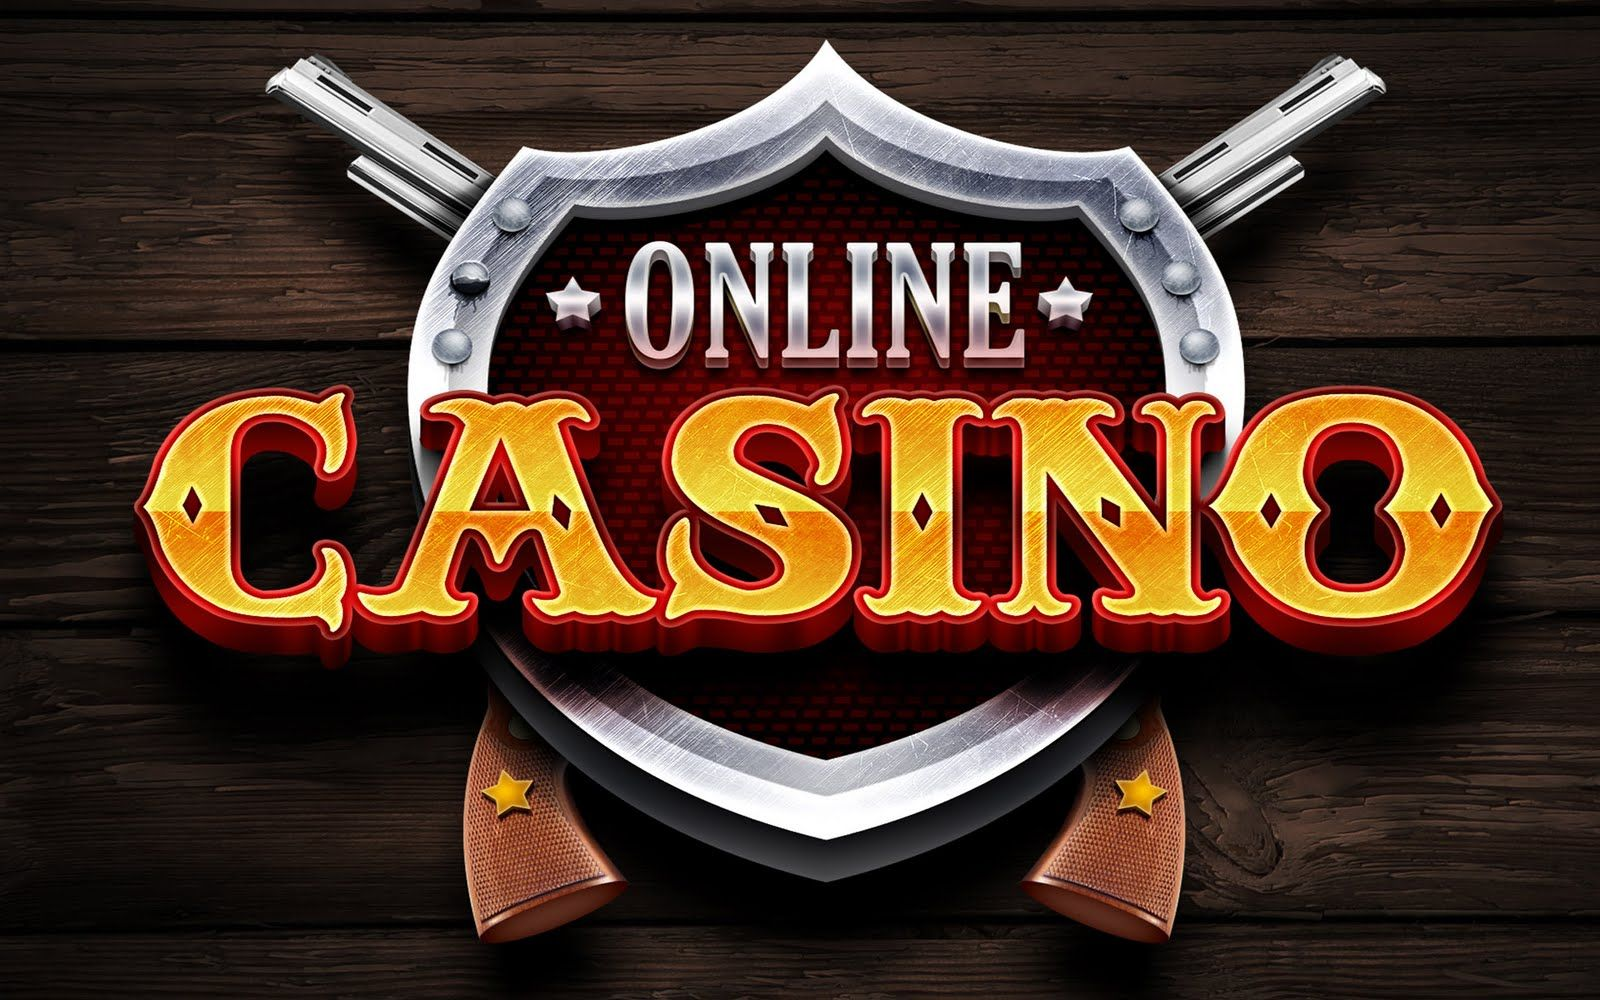 Best internet casino gambling treatment centres toronto